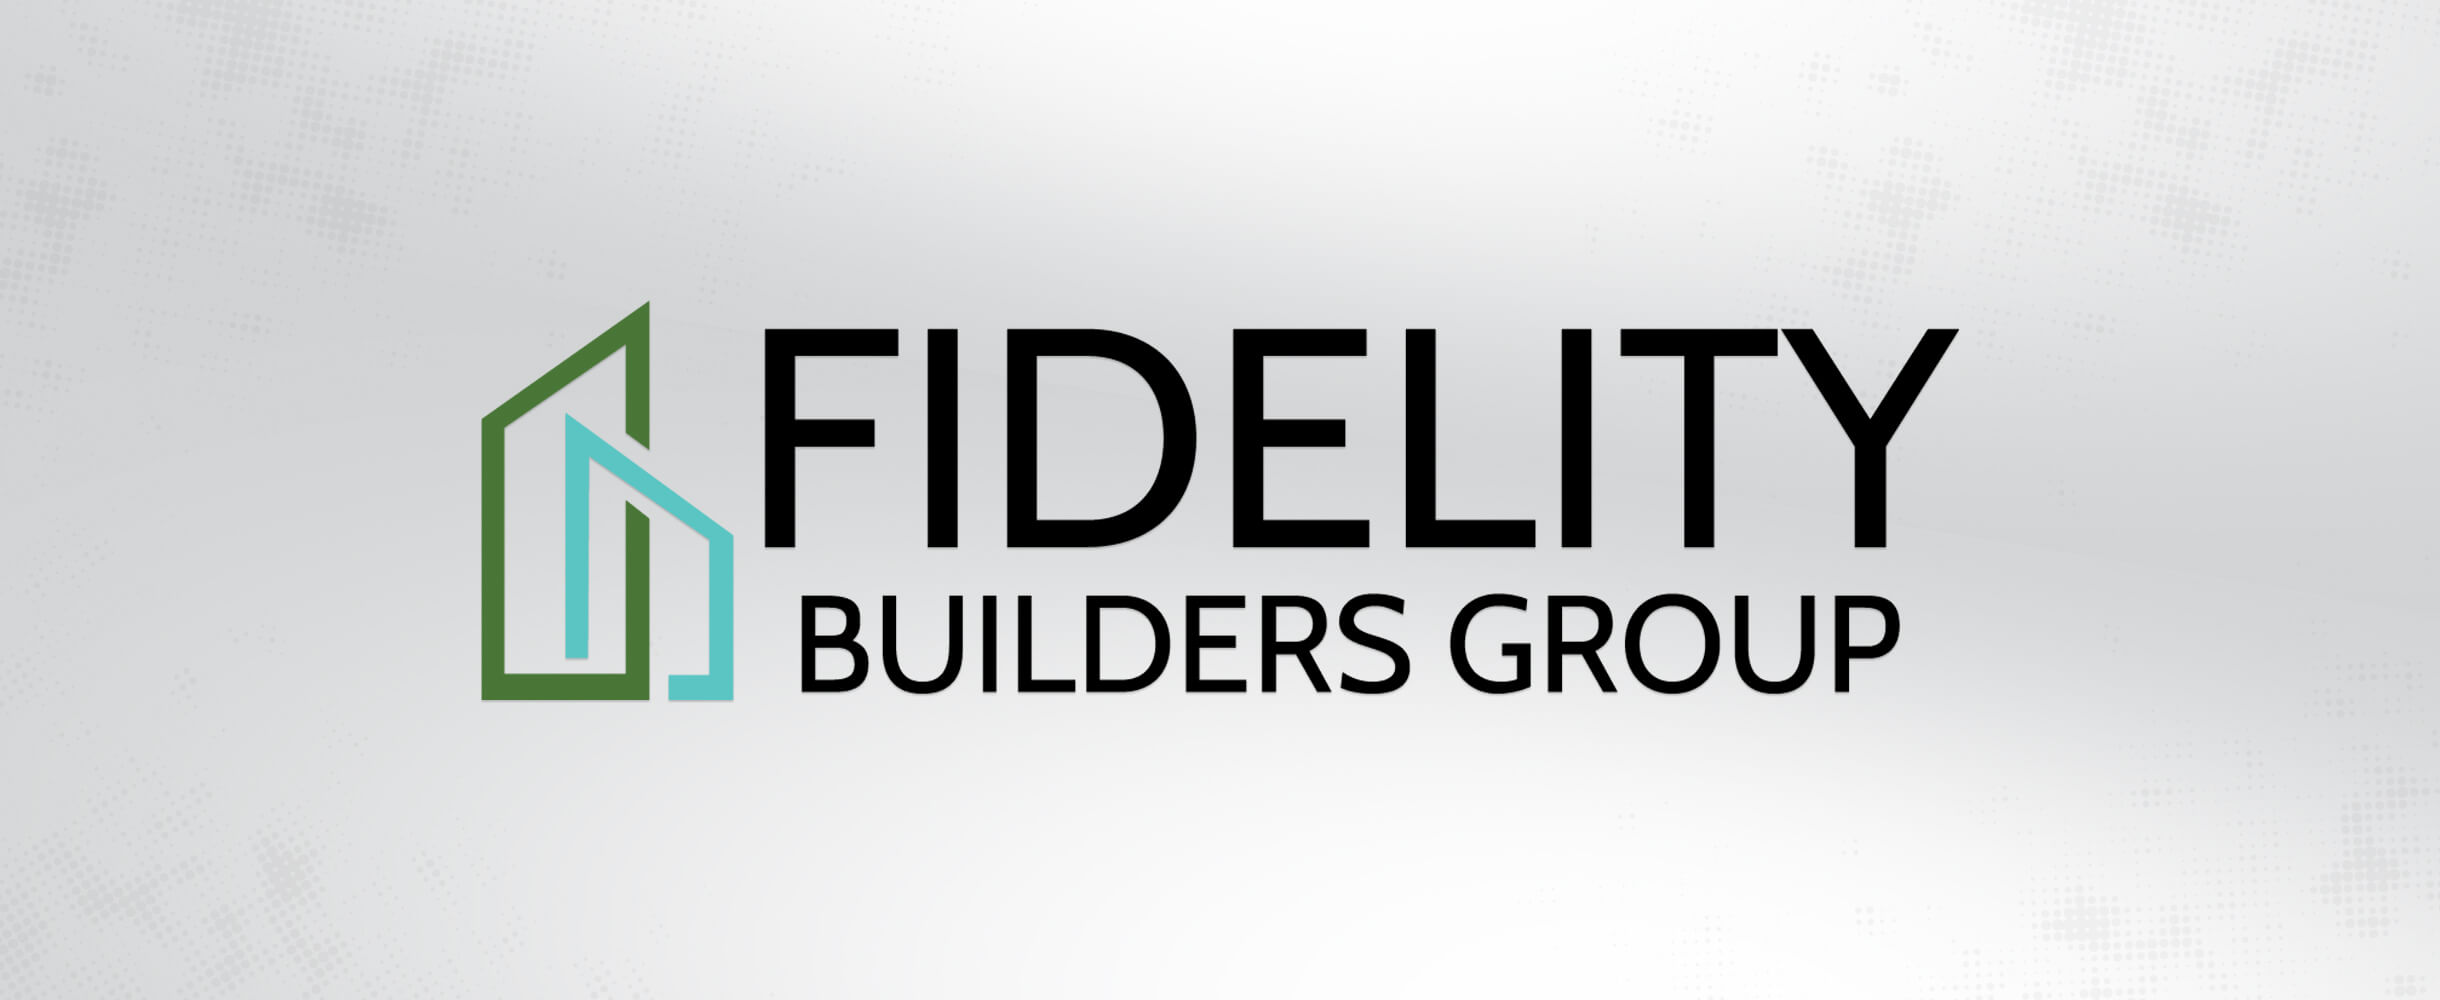 fidelity builders group logo